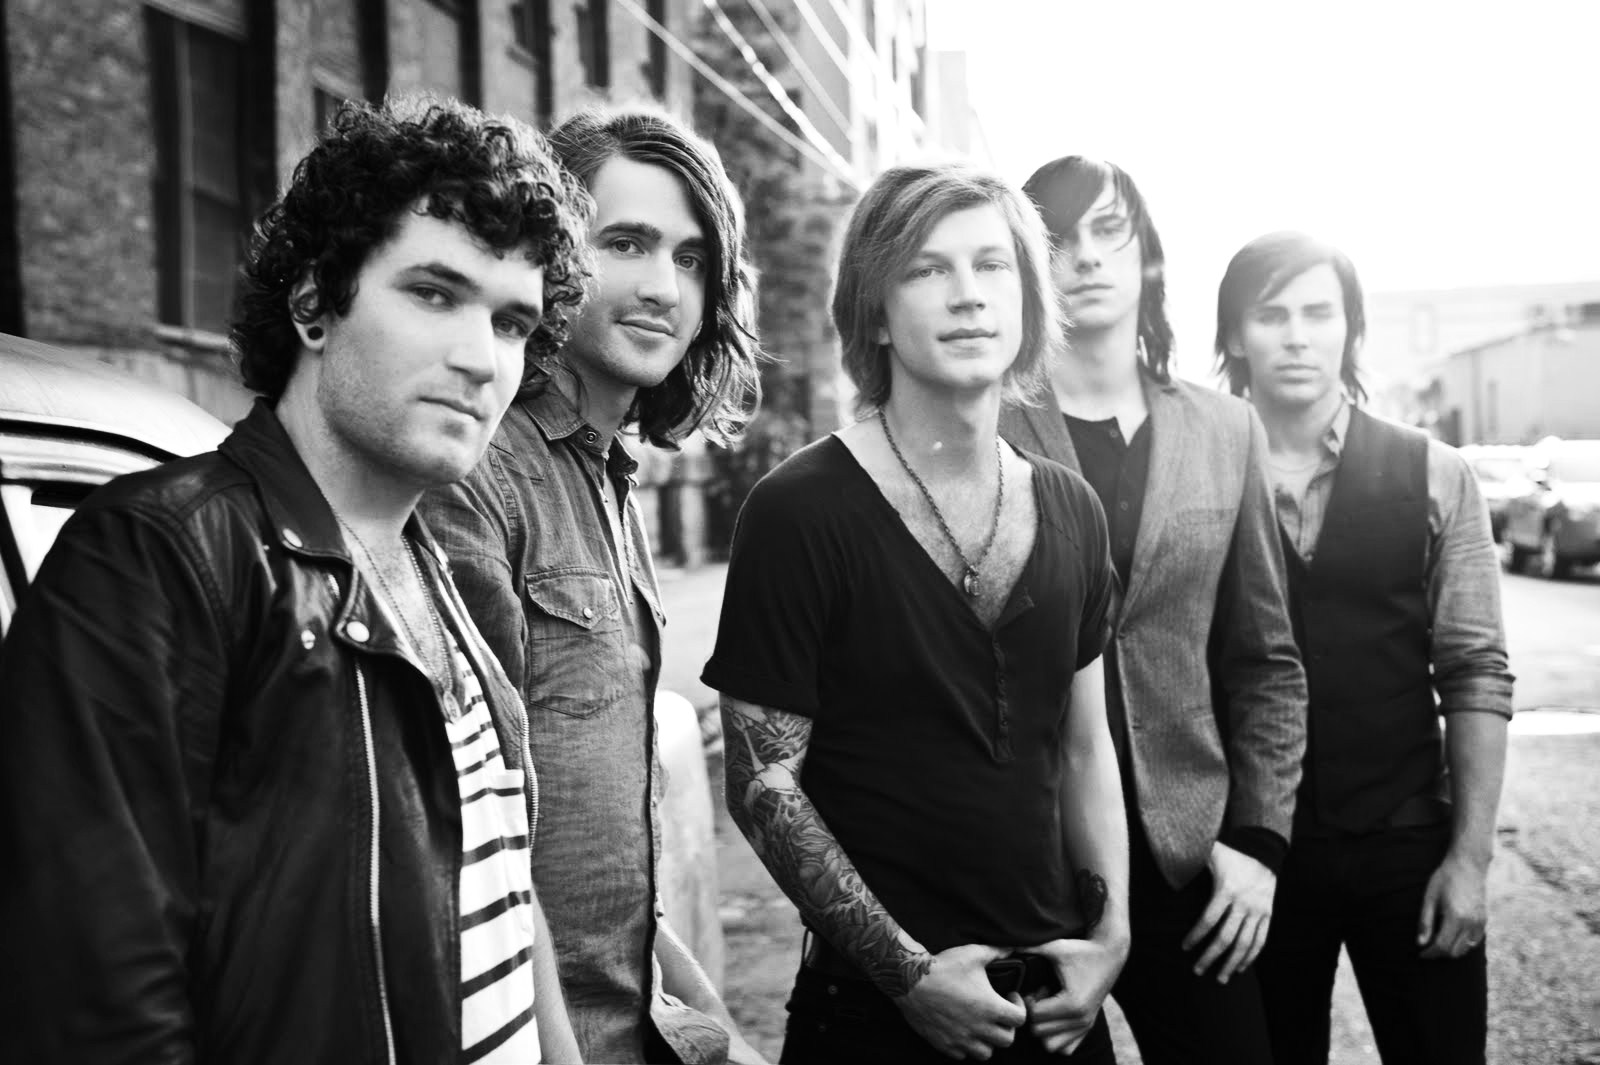 Mayday Parade will release